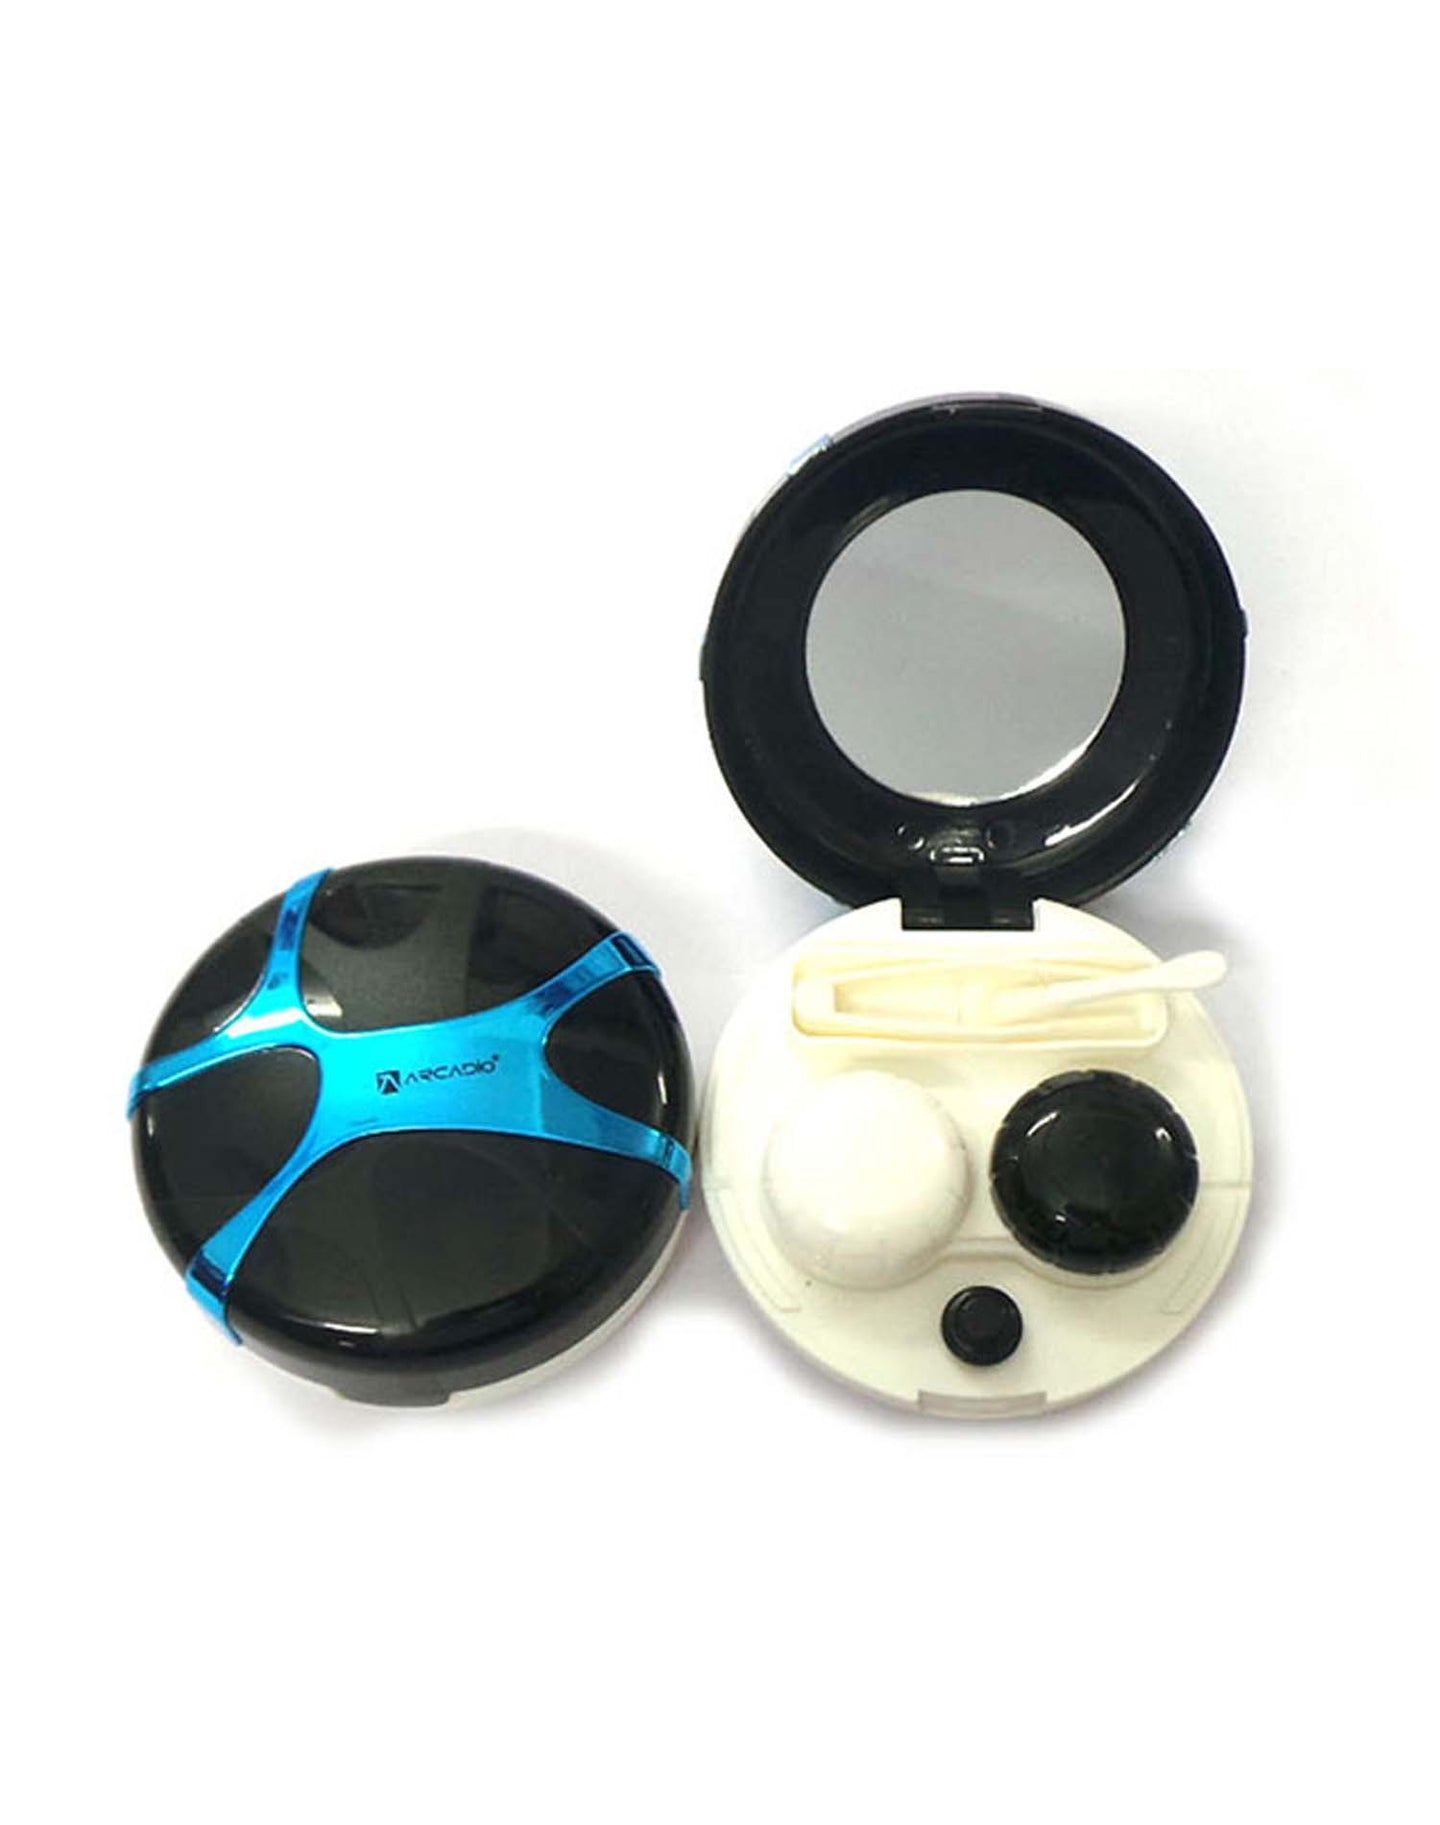 SPHERES - Designer Contact Lens Cases - HL300BL